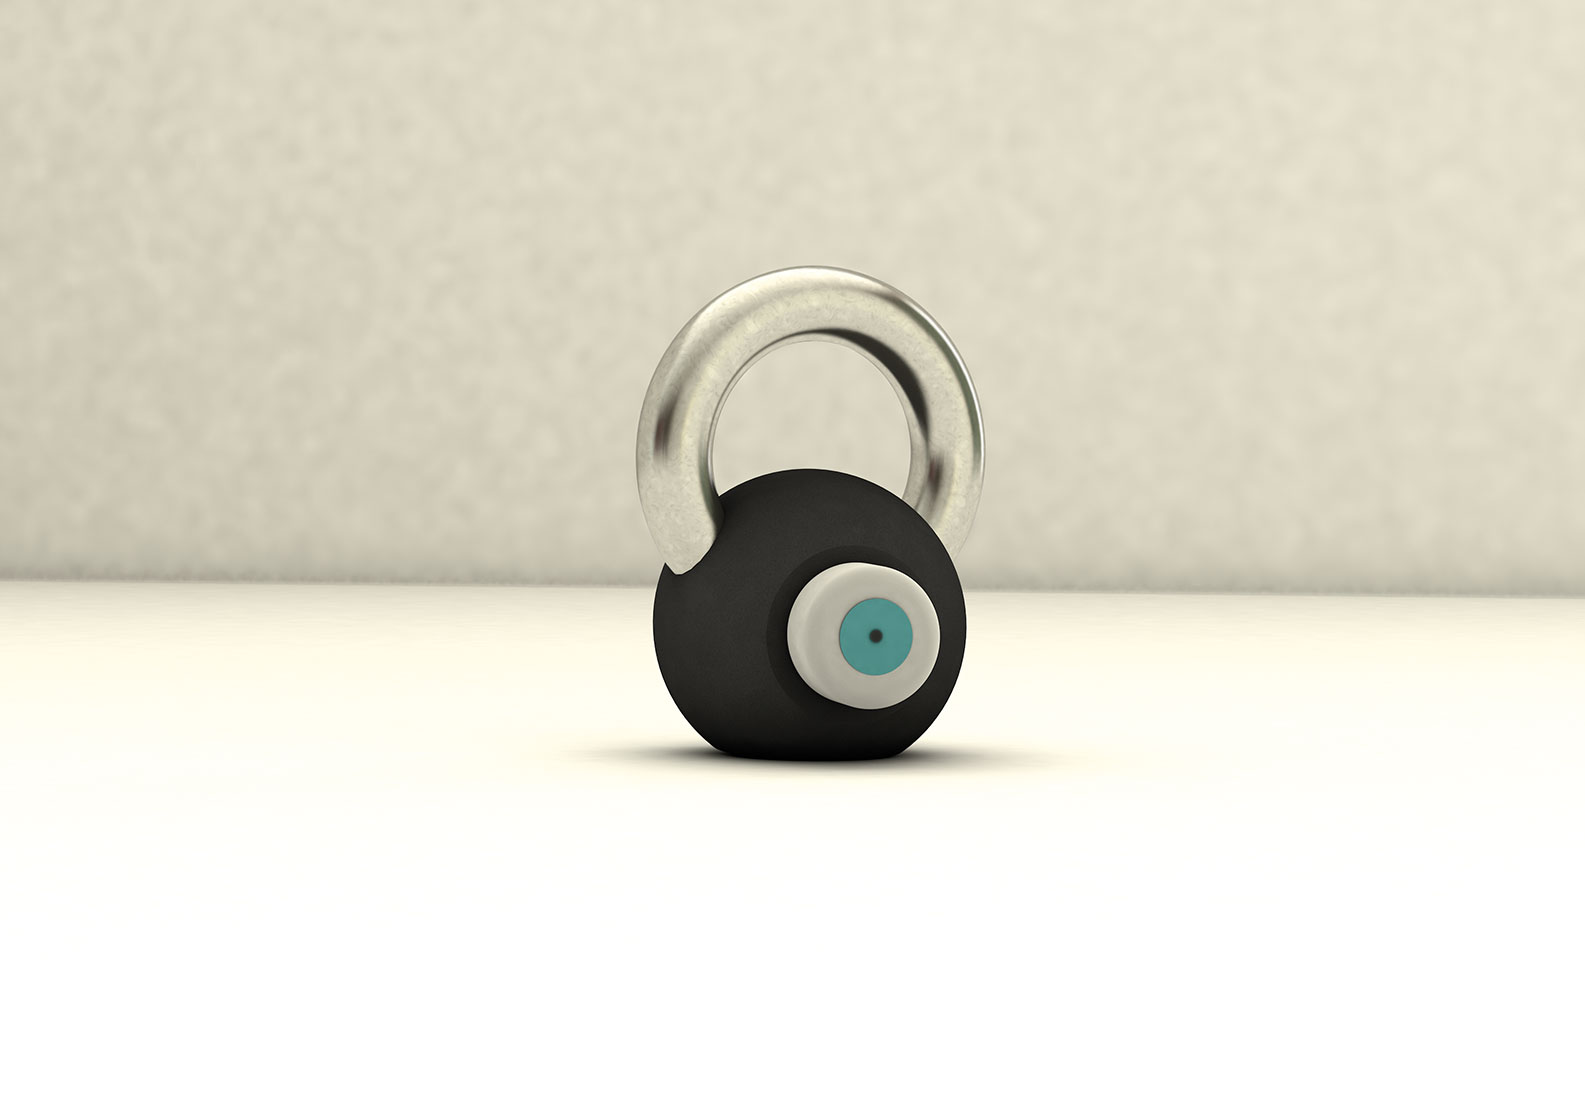 Initiales Rendering des Wearables an einer Kettle Bell